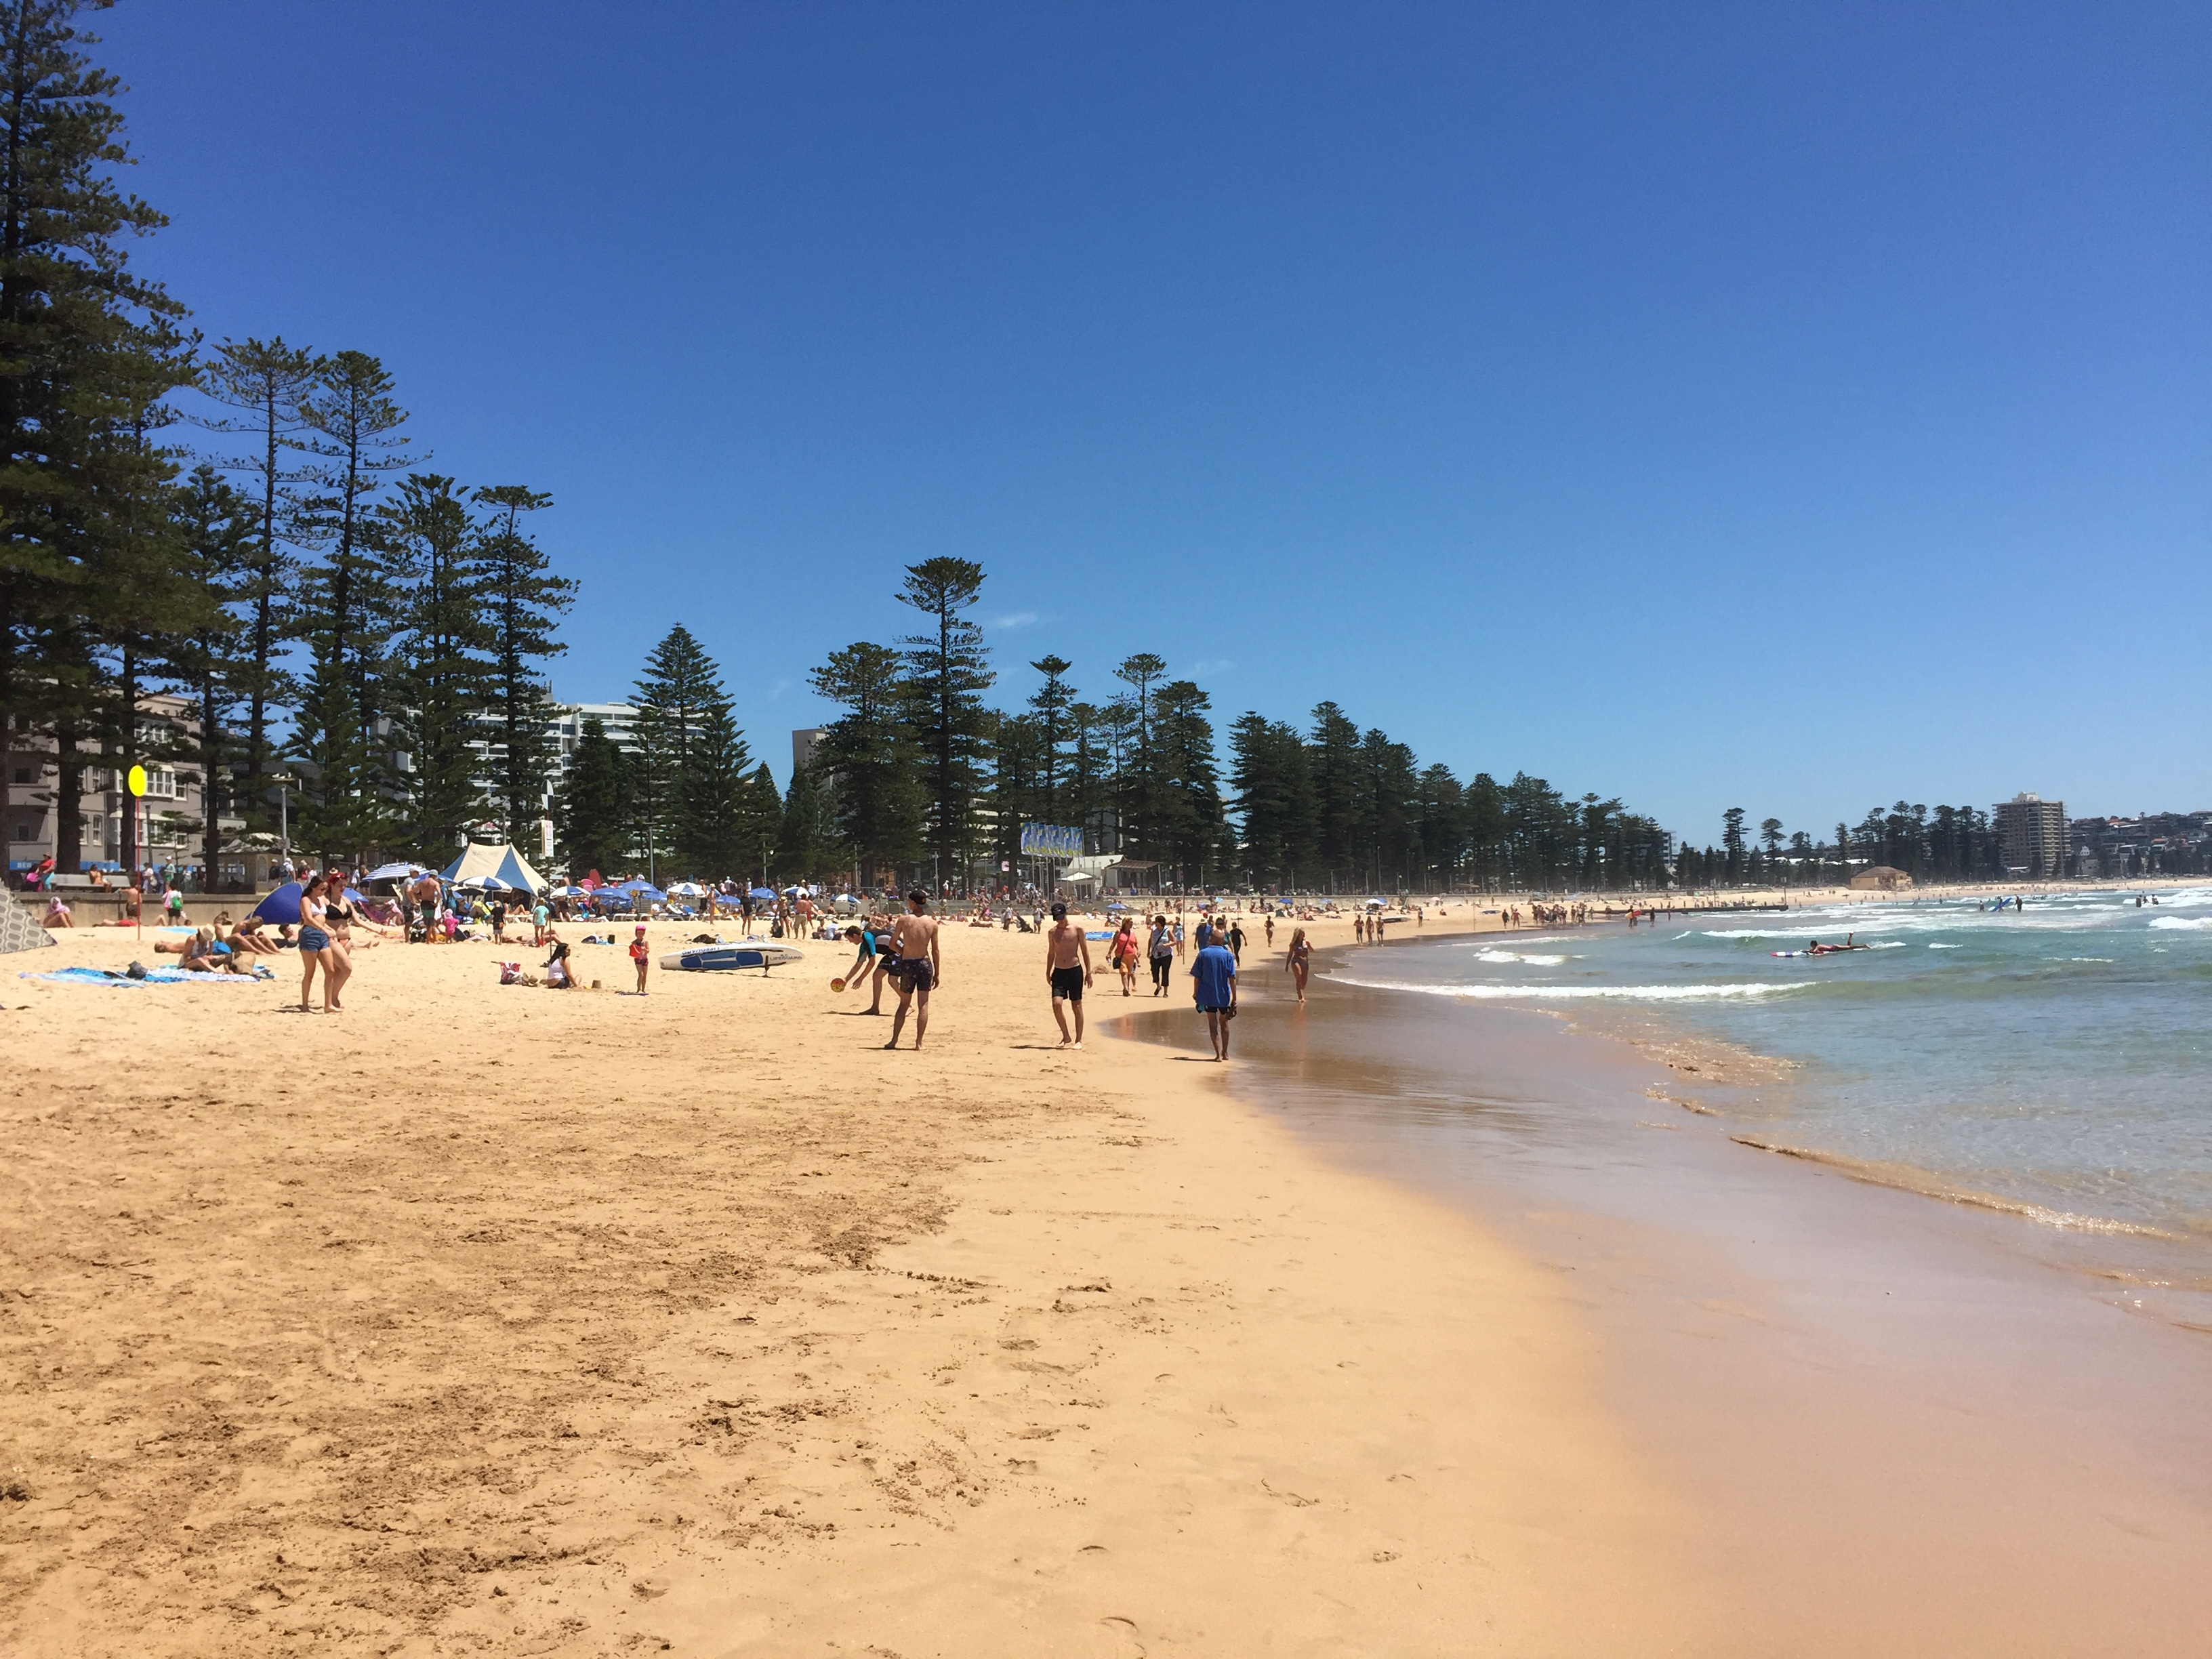 Golden sands of Manly beach